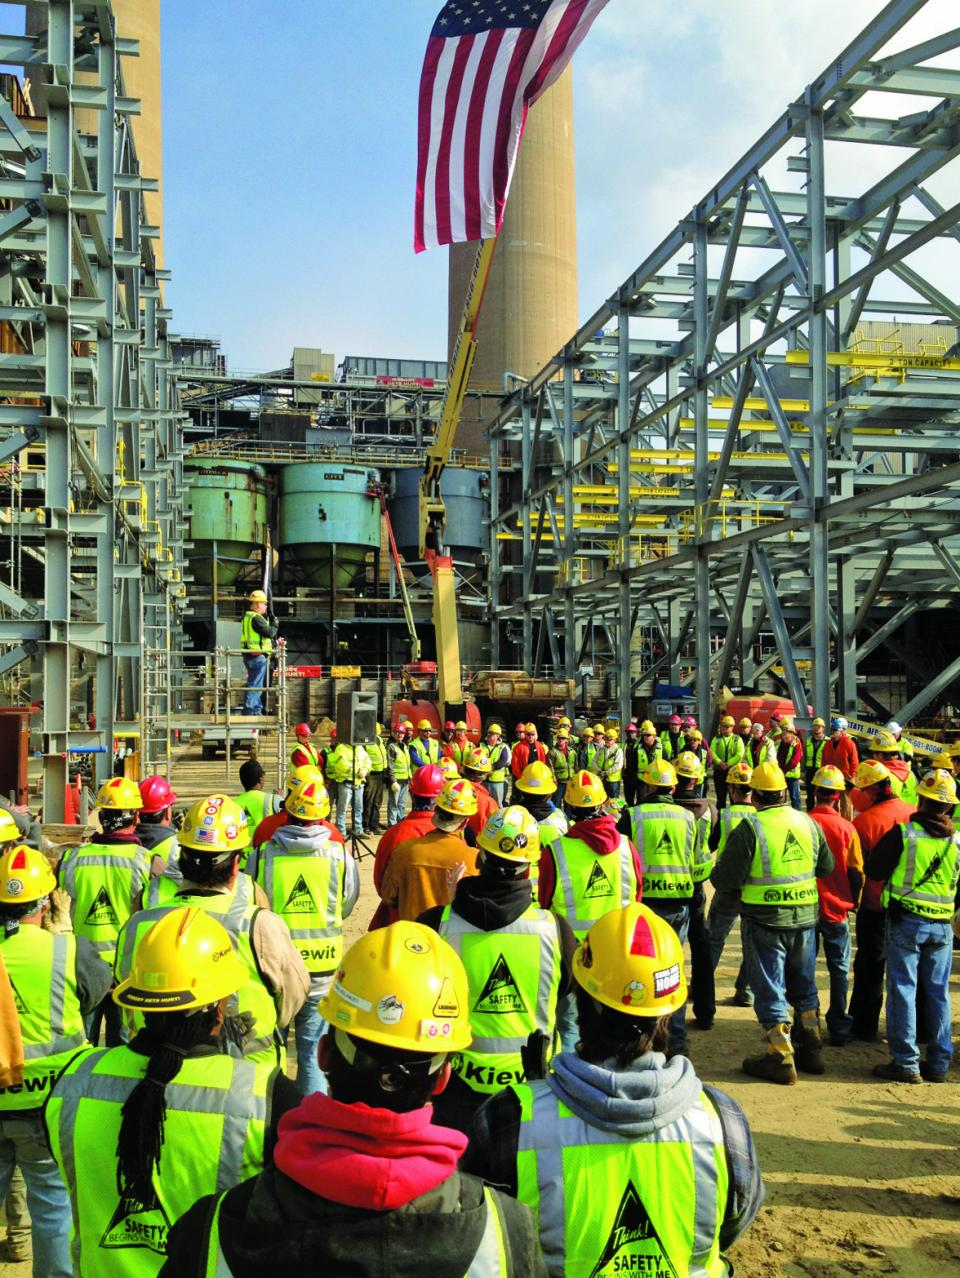 Kiewit Corporation - Great Place To Work United States